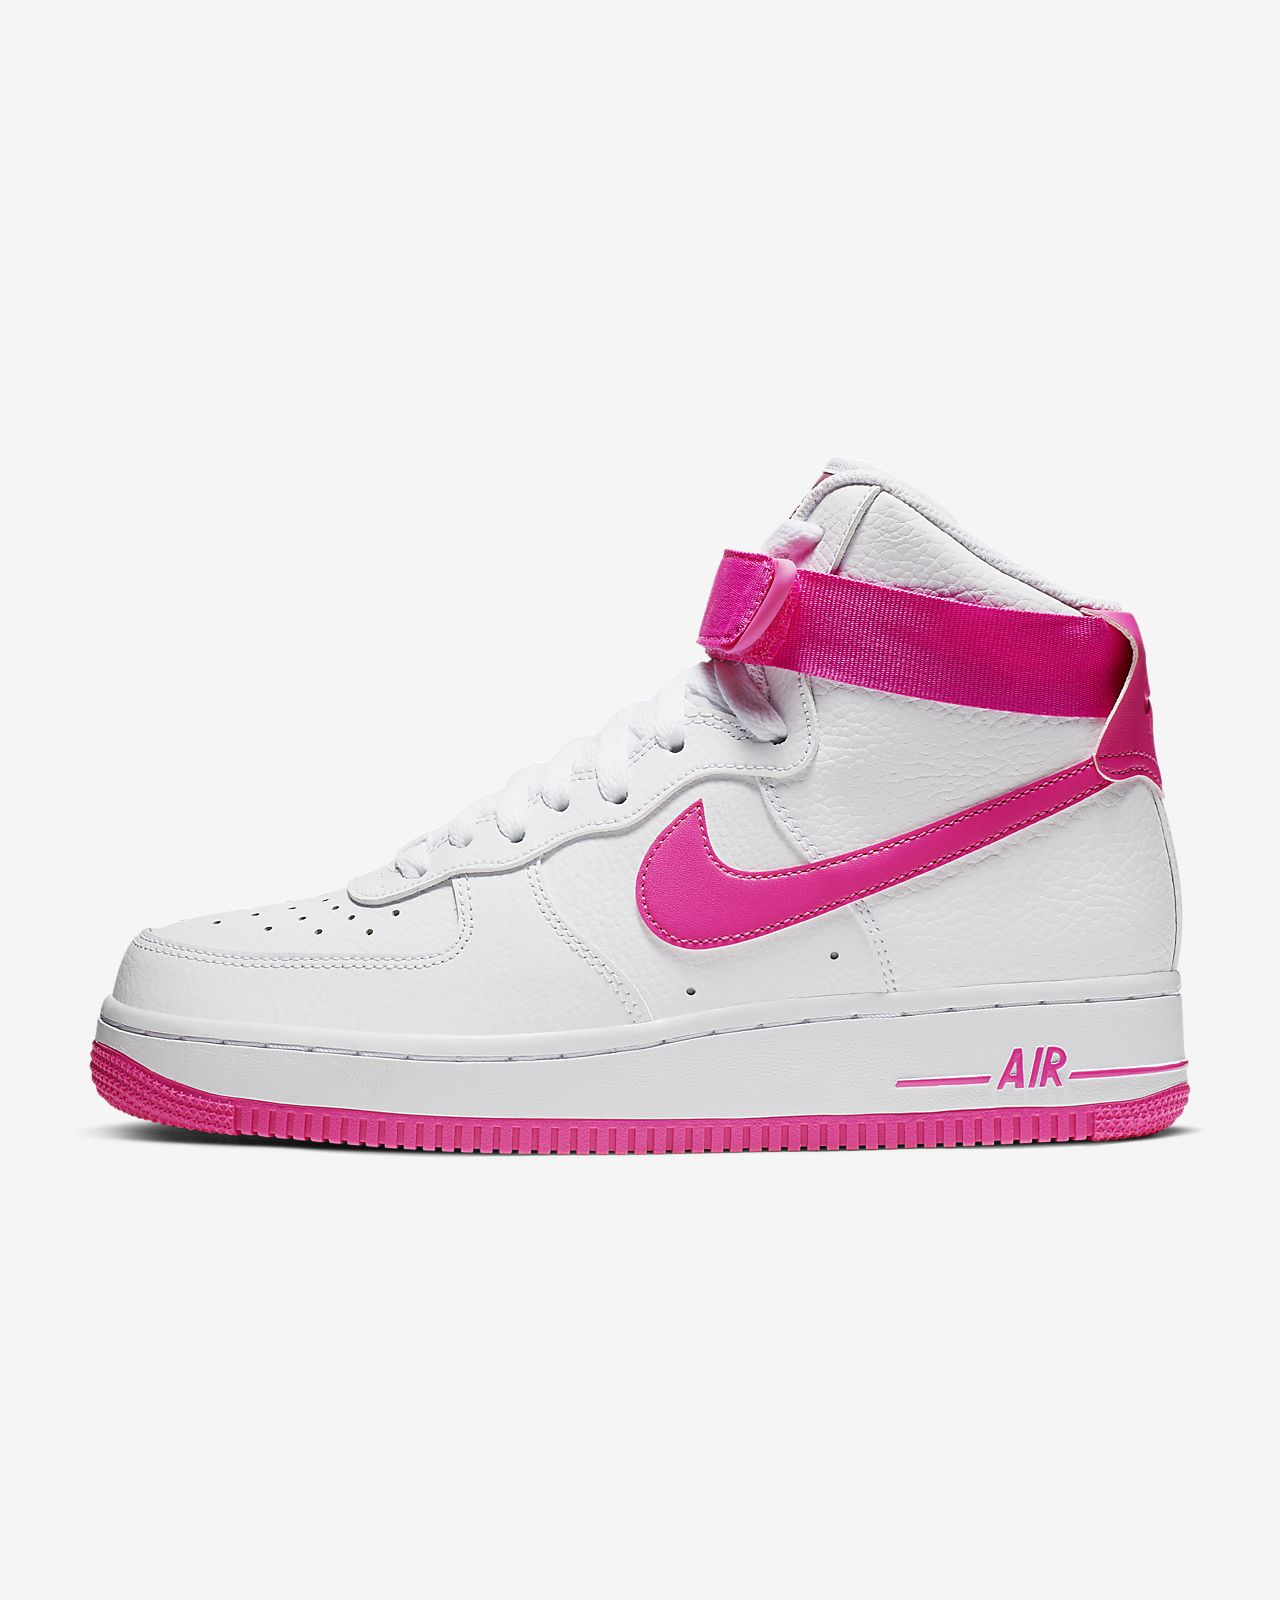 Nike Air Force 1 High 08 LE Women's Shoe